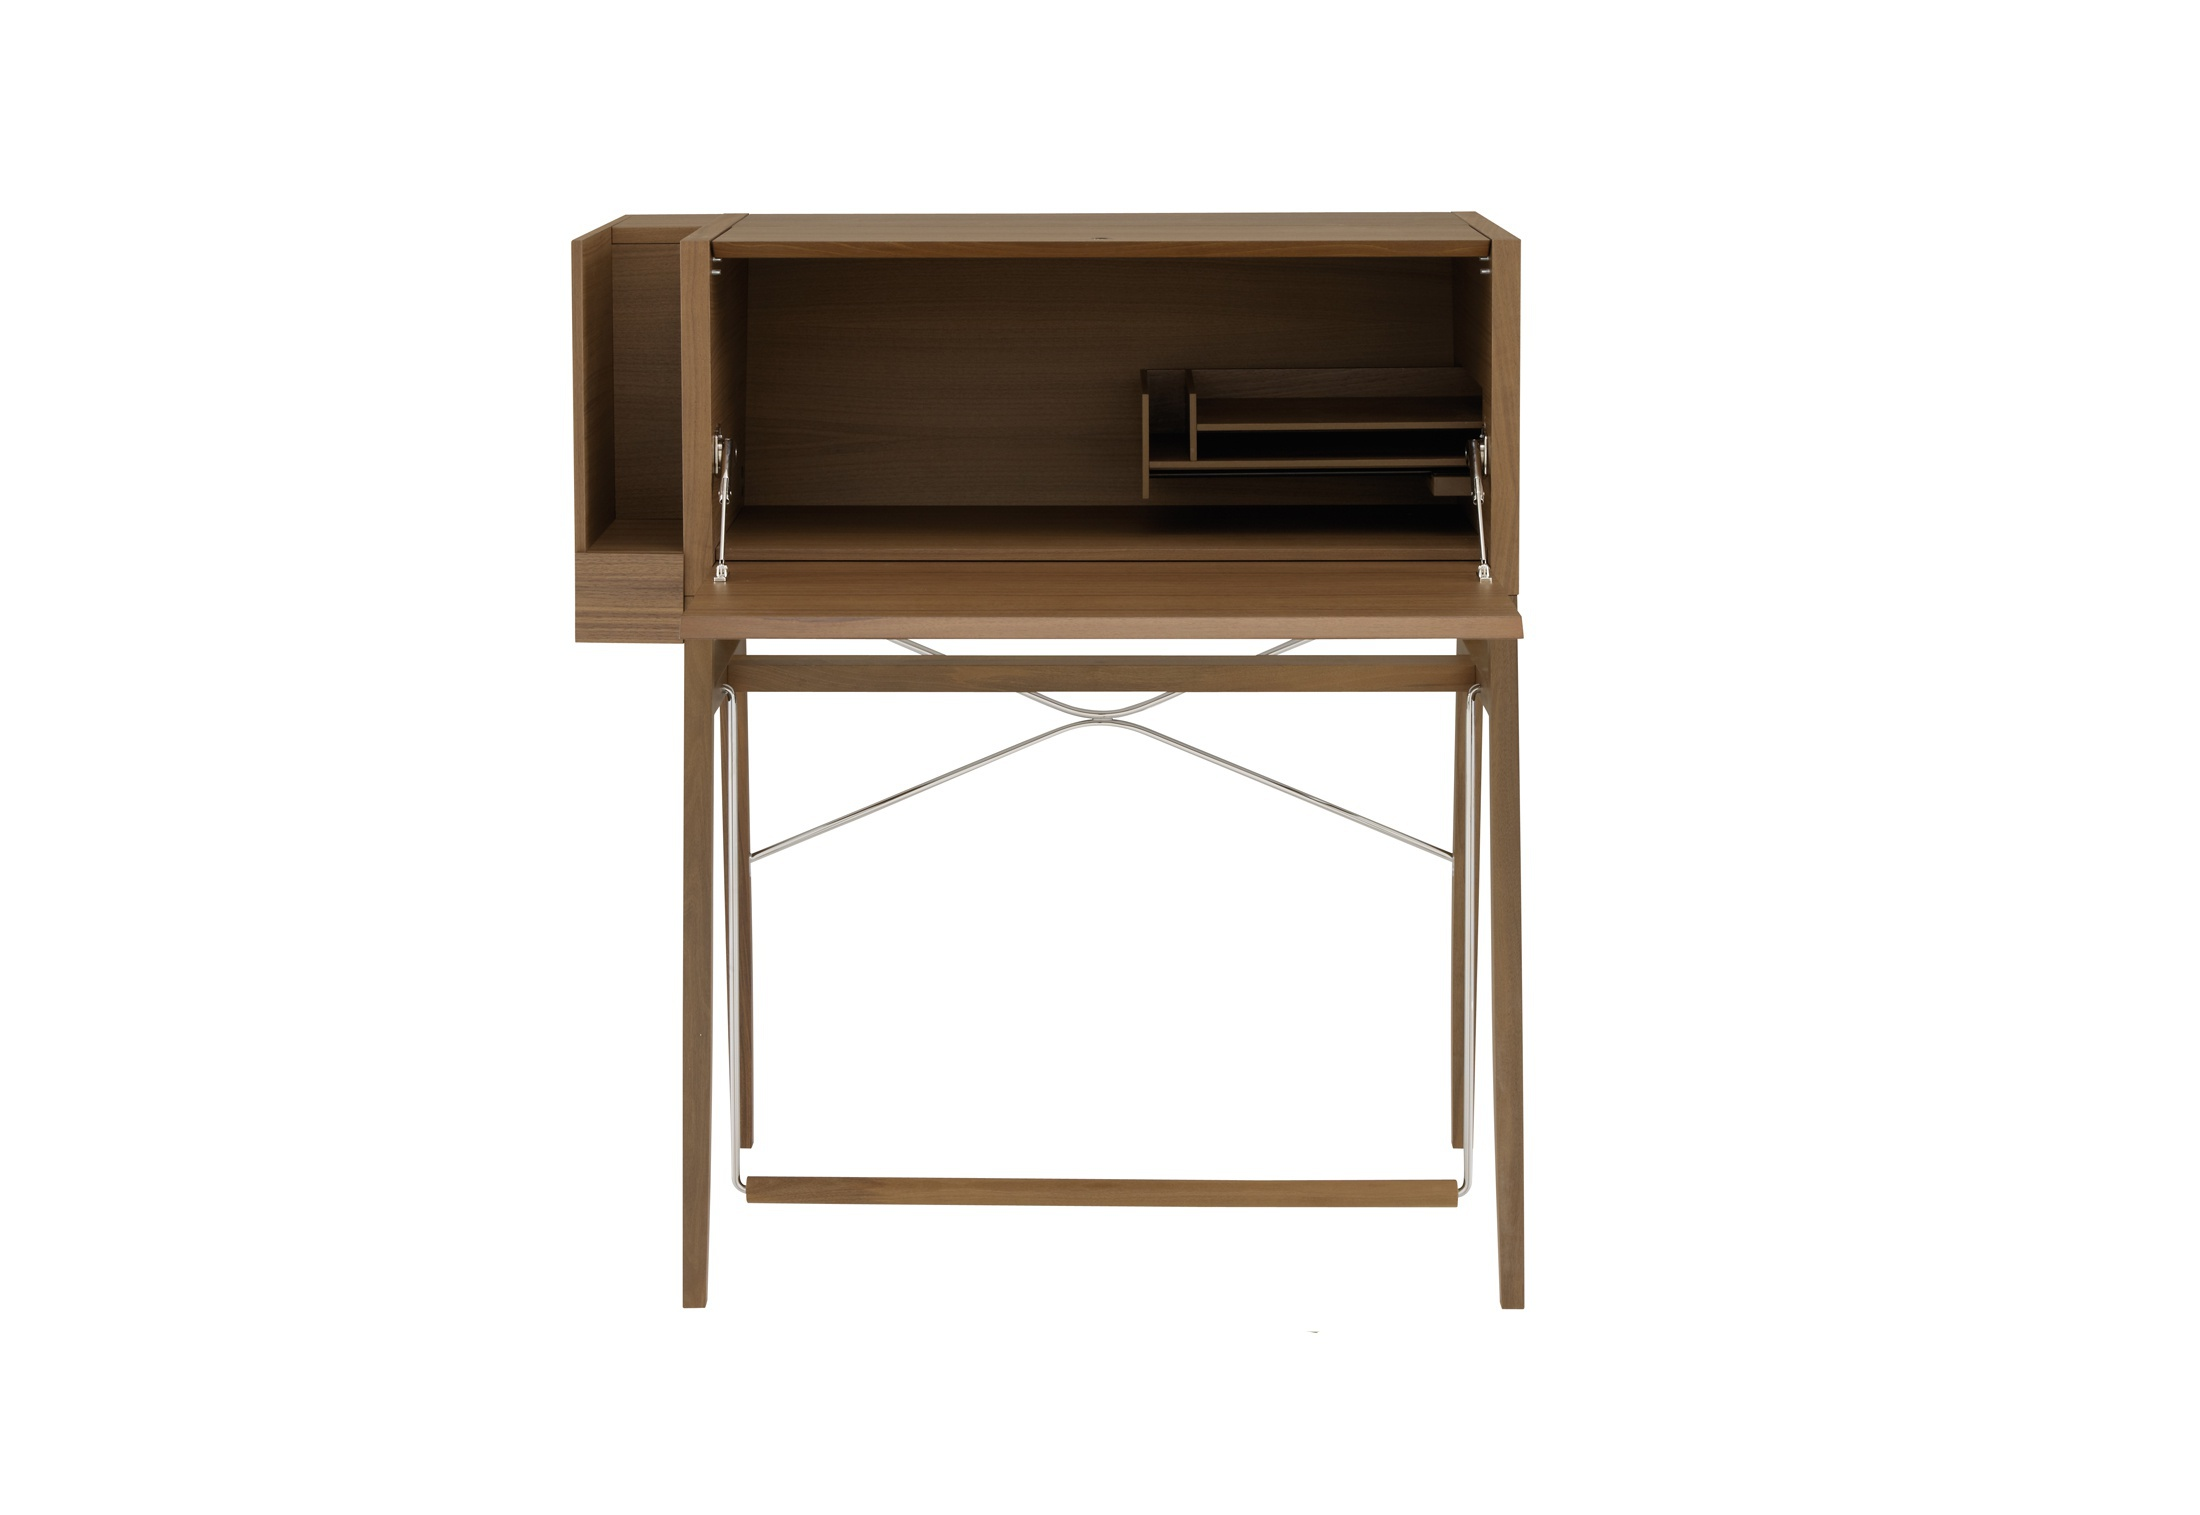 The secretaire of natural wood with compartments storage for La ligne roset